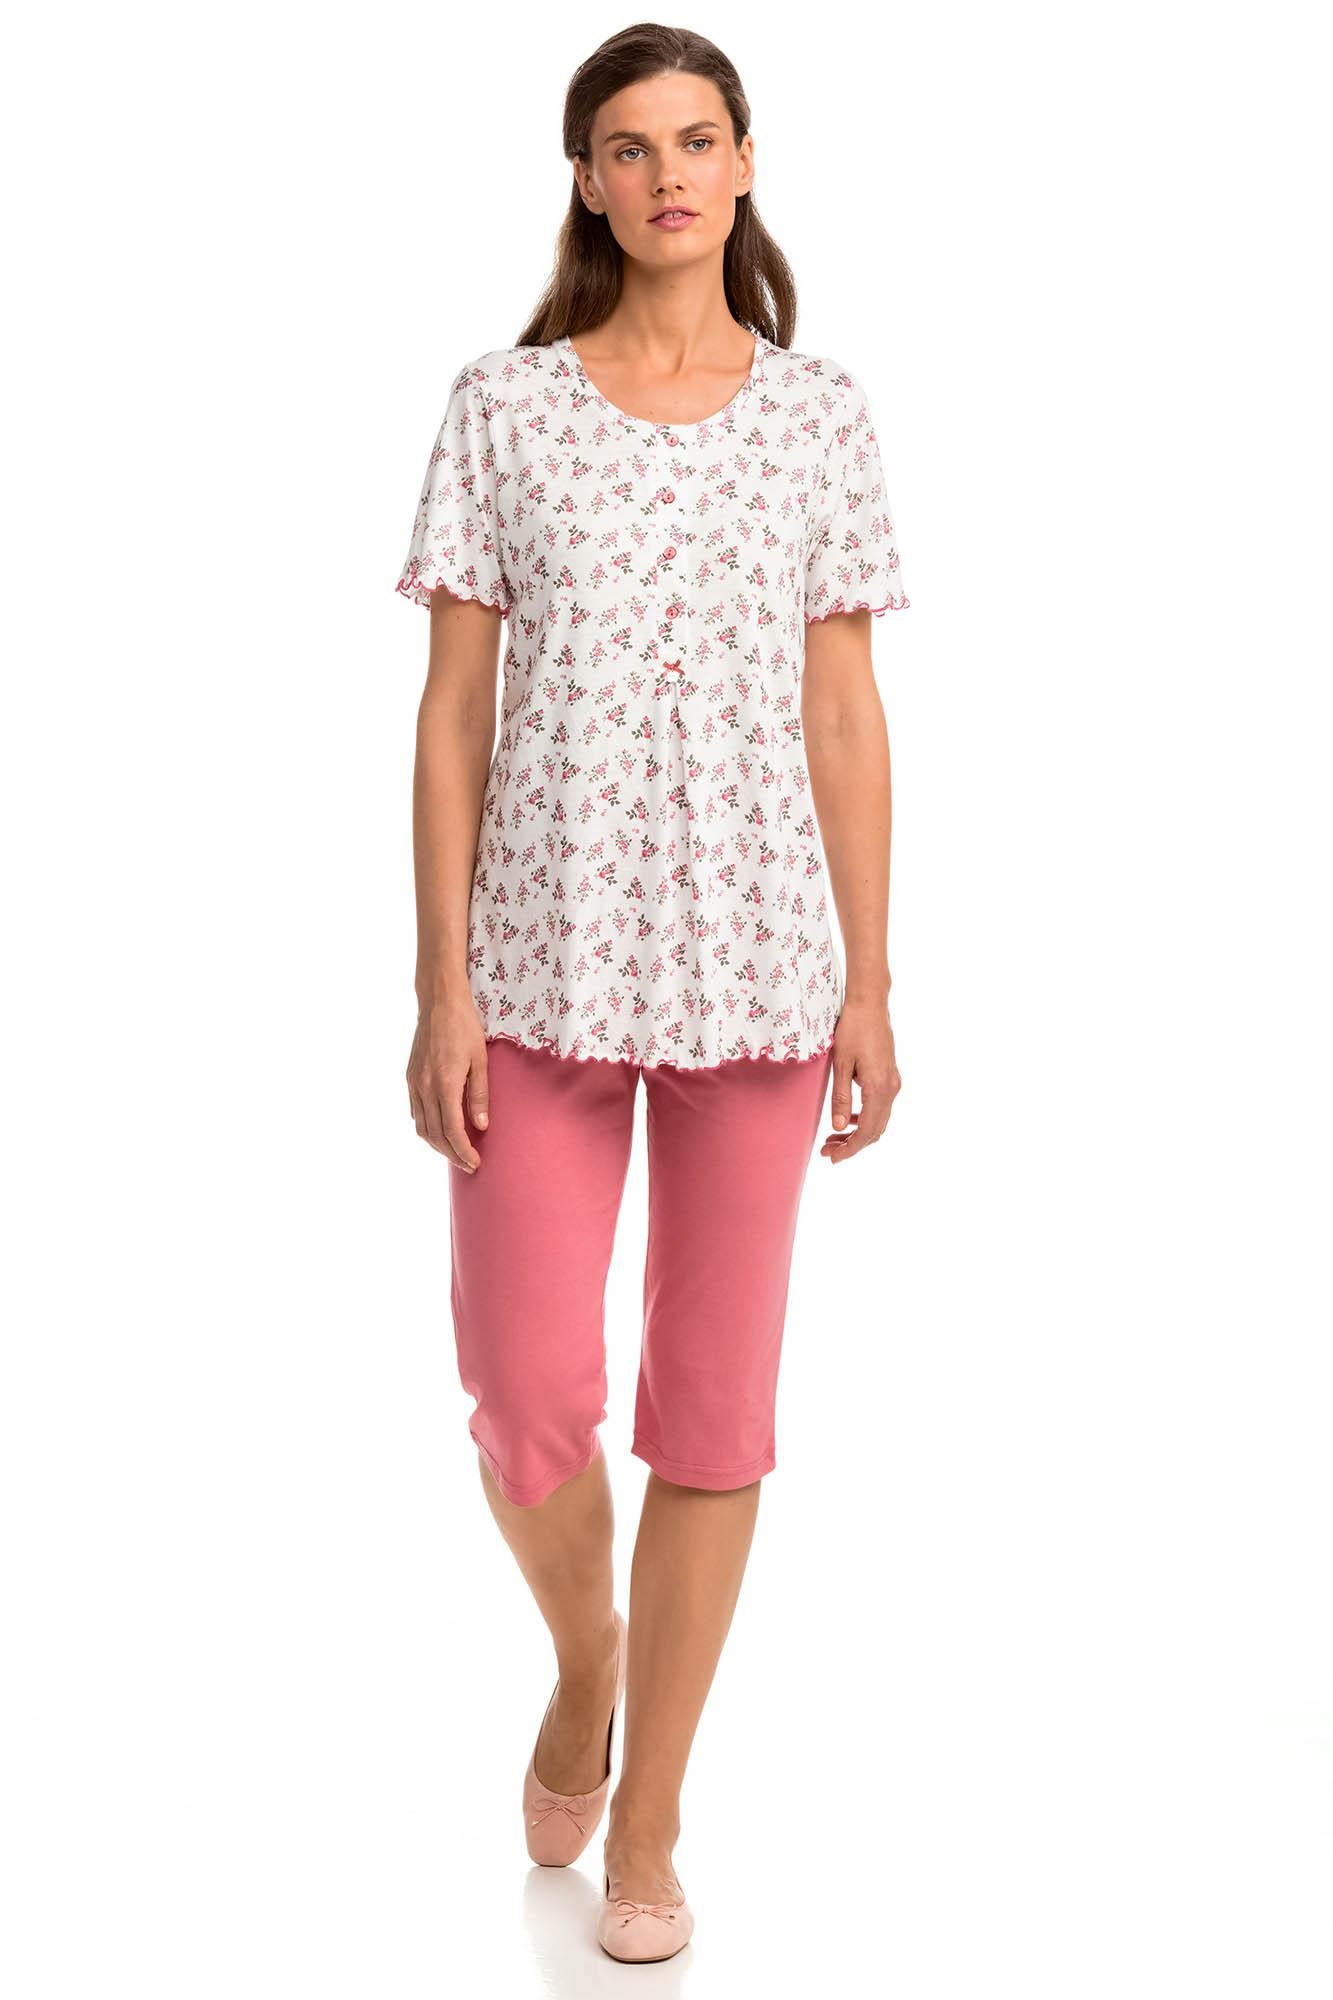 Women's Pyjamas with Button Placket